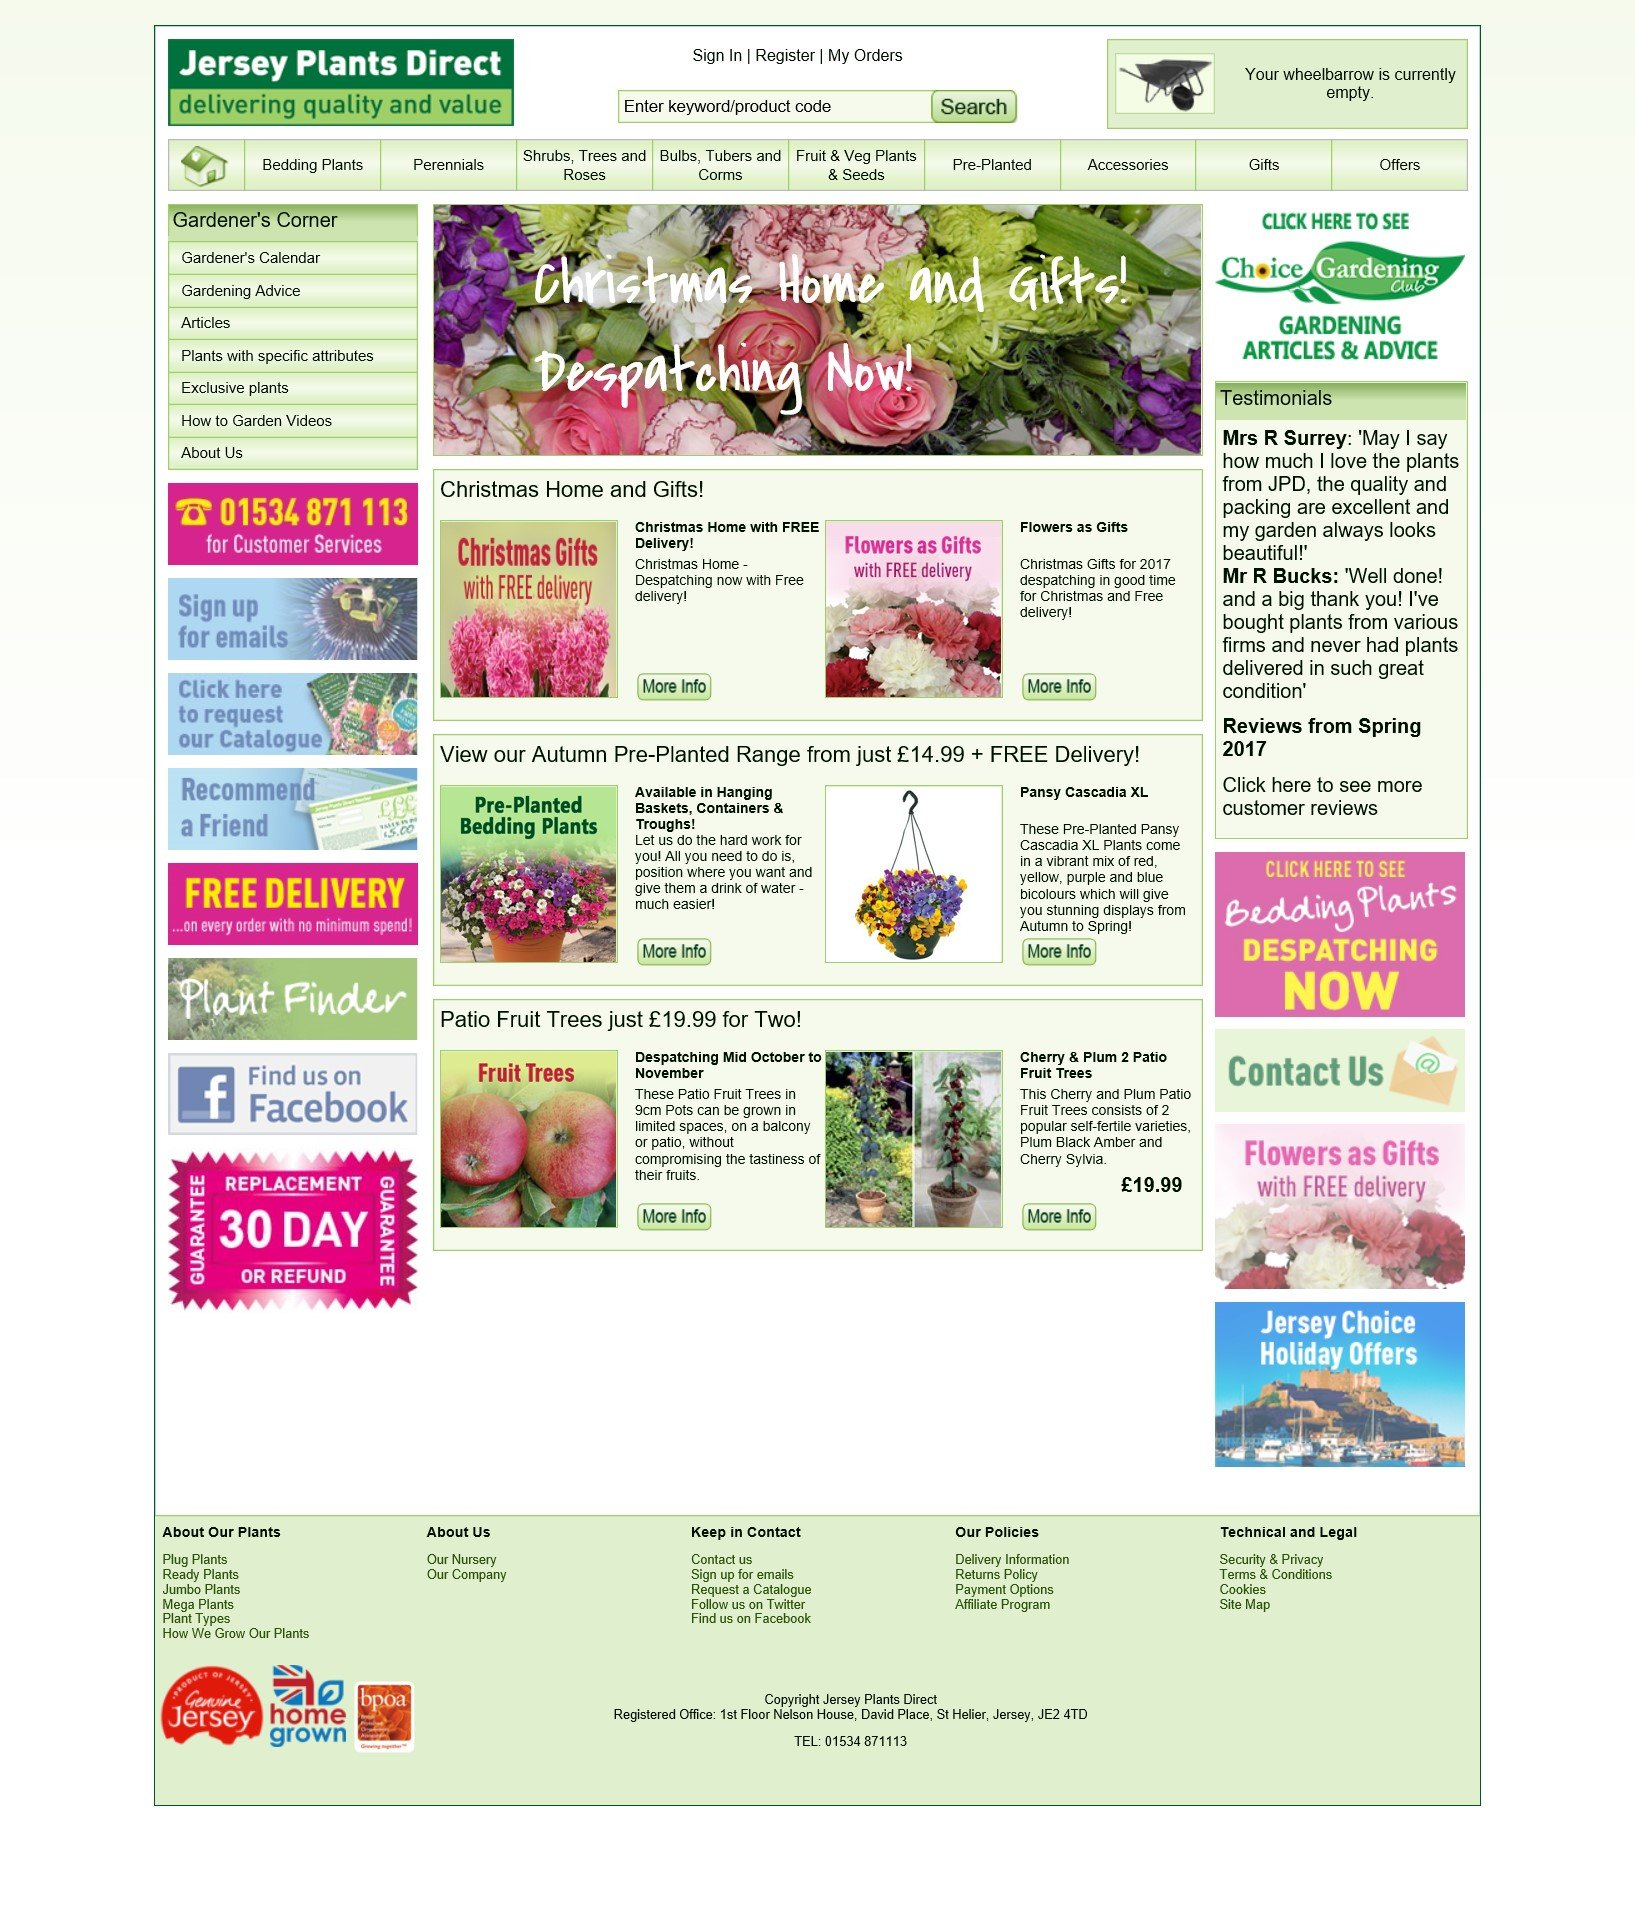 Jersey Plants Direct re a Mail Order Bedding Plant Nursery based in Jersey selling a full year round range of Jersey grown bedding plants, shrubs and bulbs with FREE DELIVERY across the UK